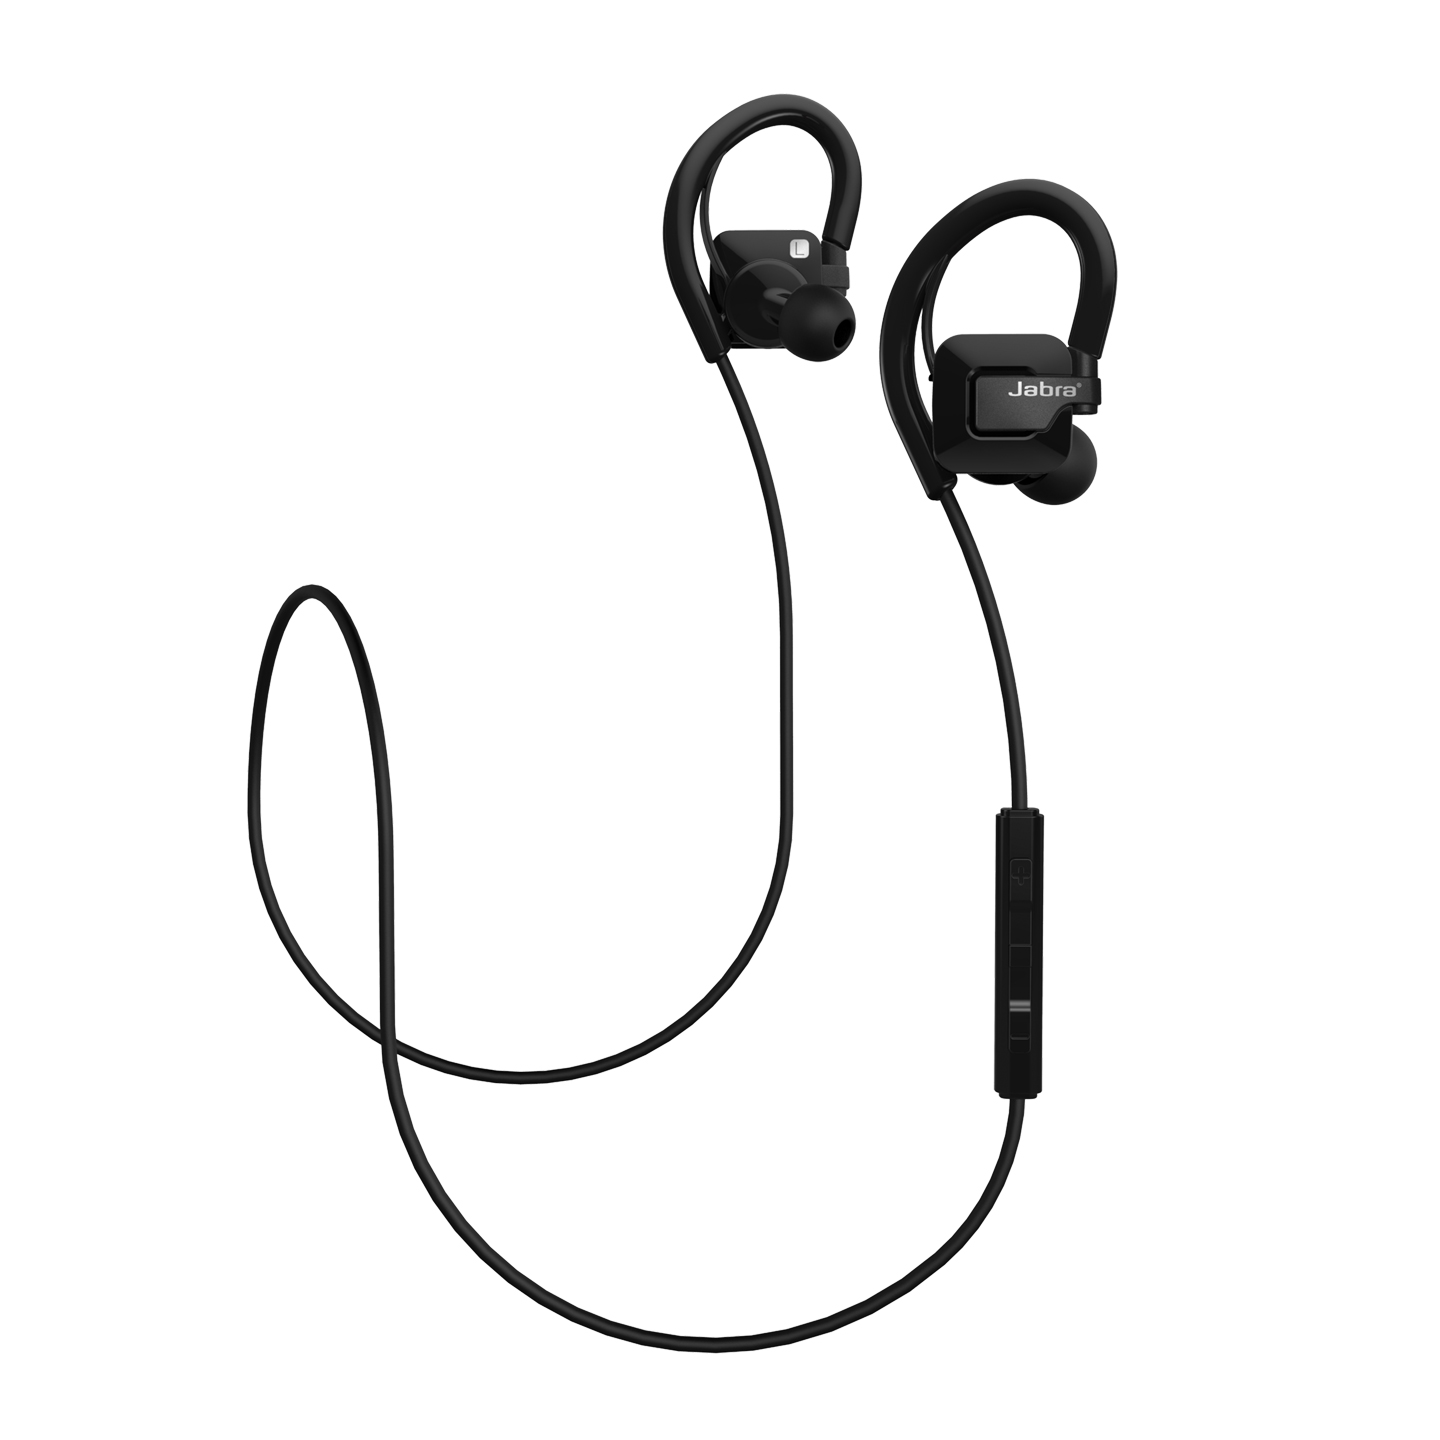 JABRA STEP IN EAR BLUETOOTH HEADSET (BLACK)